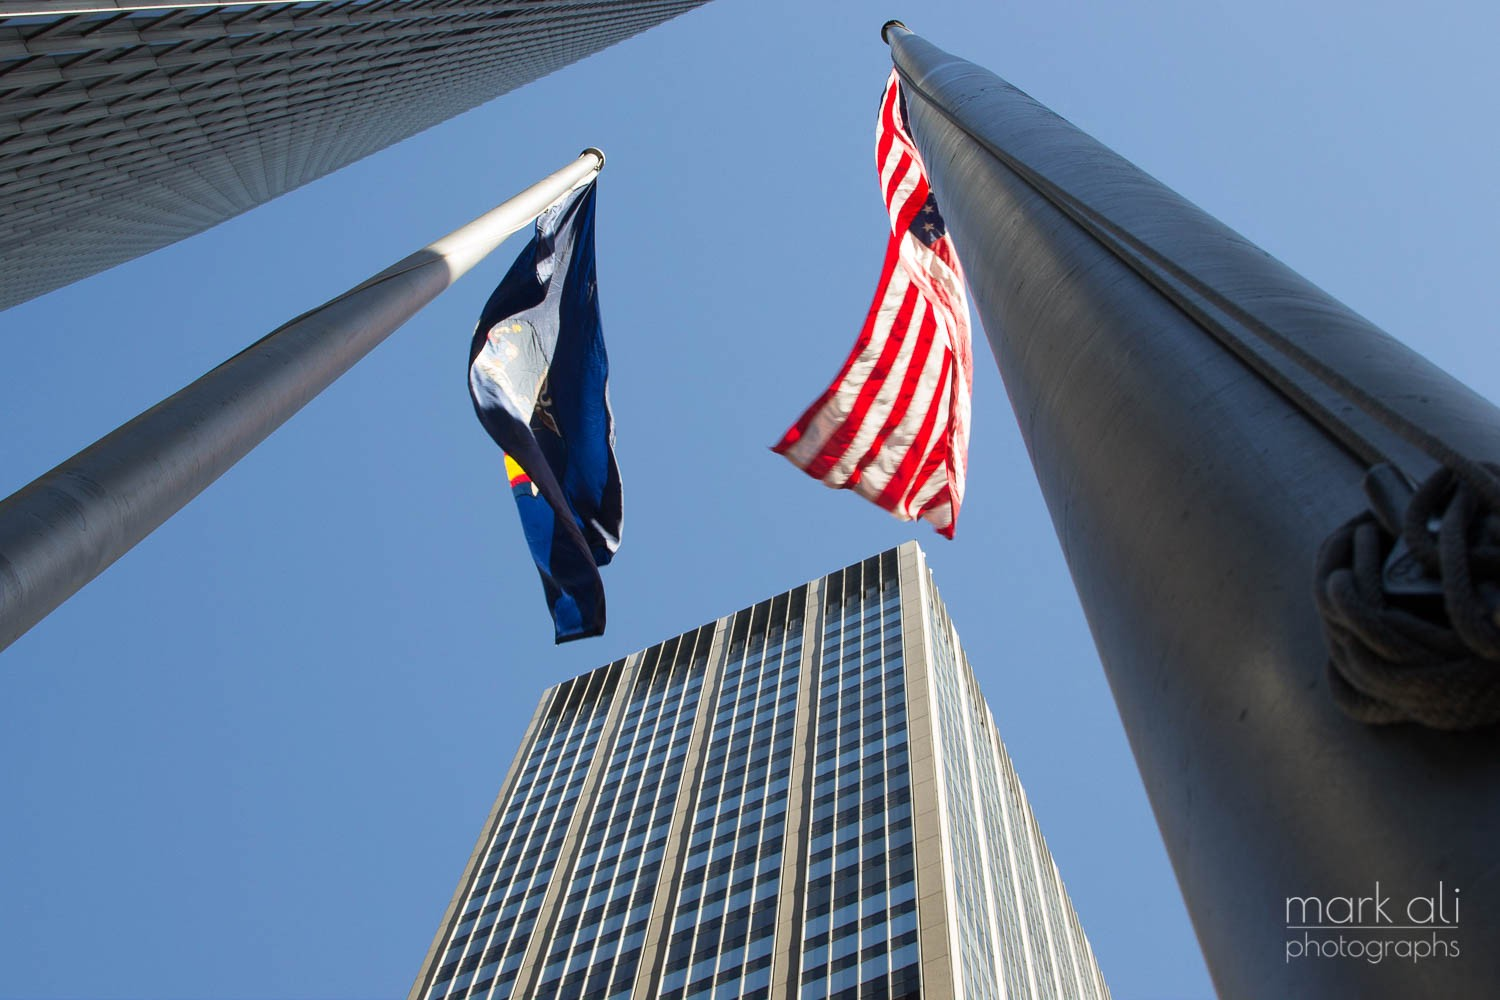 A shot looking up at flag poles and skyscrapers in Manhattan.